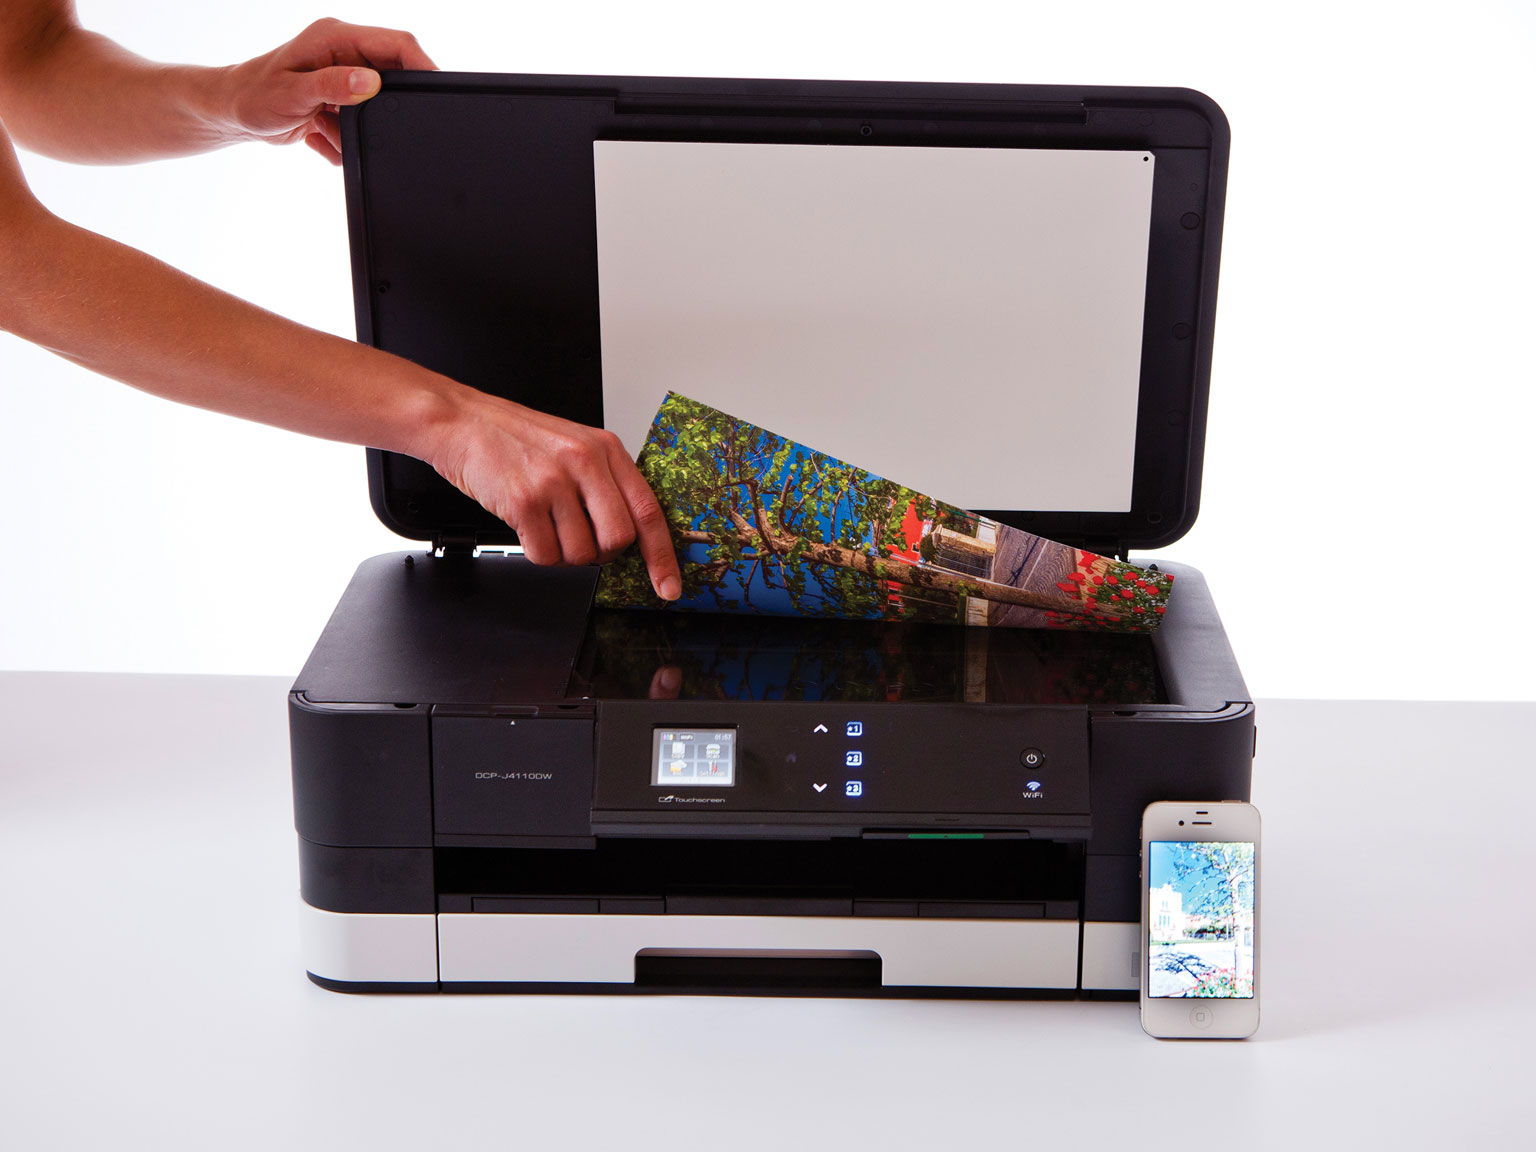 Person scanning a document in a Brother printer